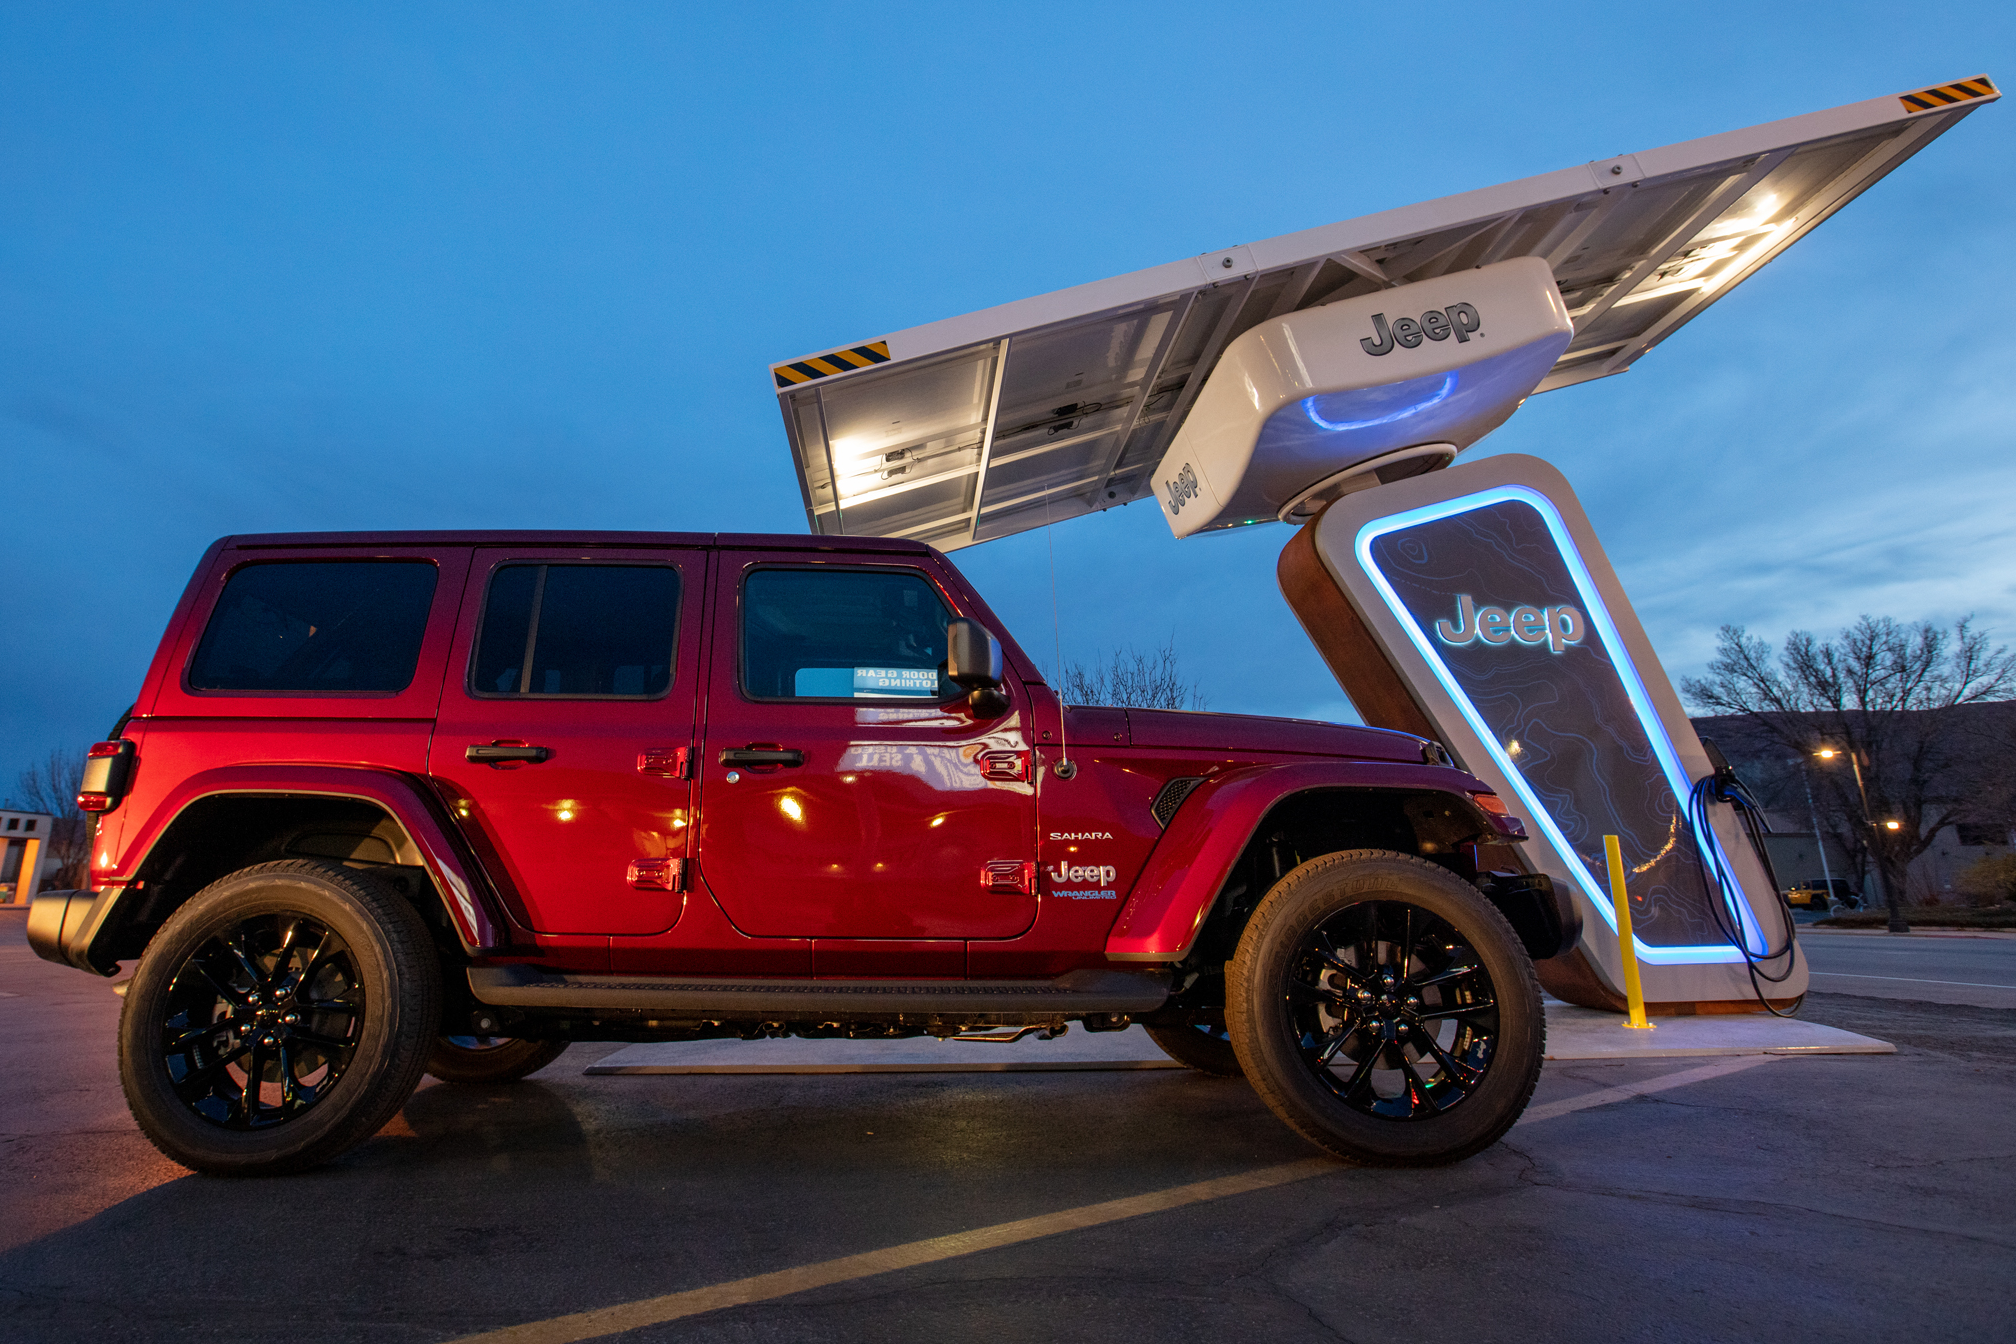 Jeep 4xe Charging Network: Jeep to open 4xe EV charging network at off-road  trails in the US, Auto News, ET Auto